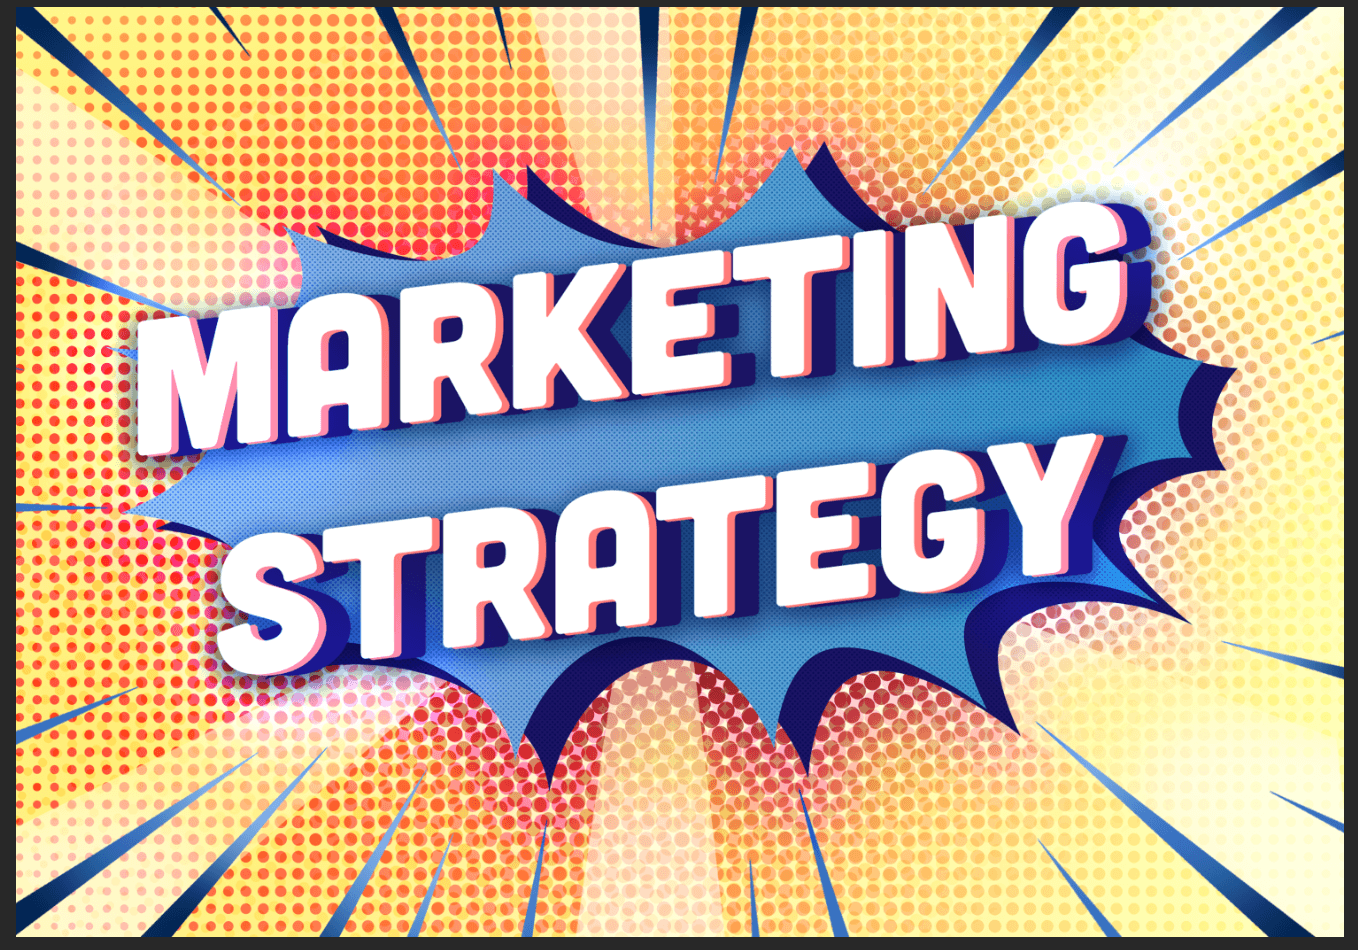 17 Digital Marketing Strategies To Propel You To Victory